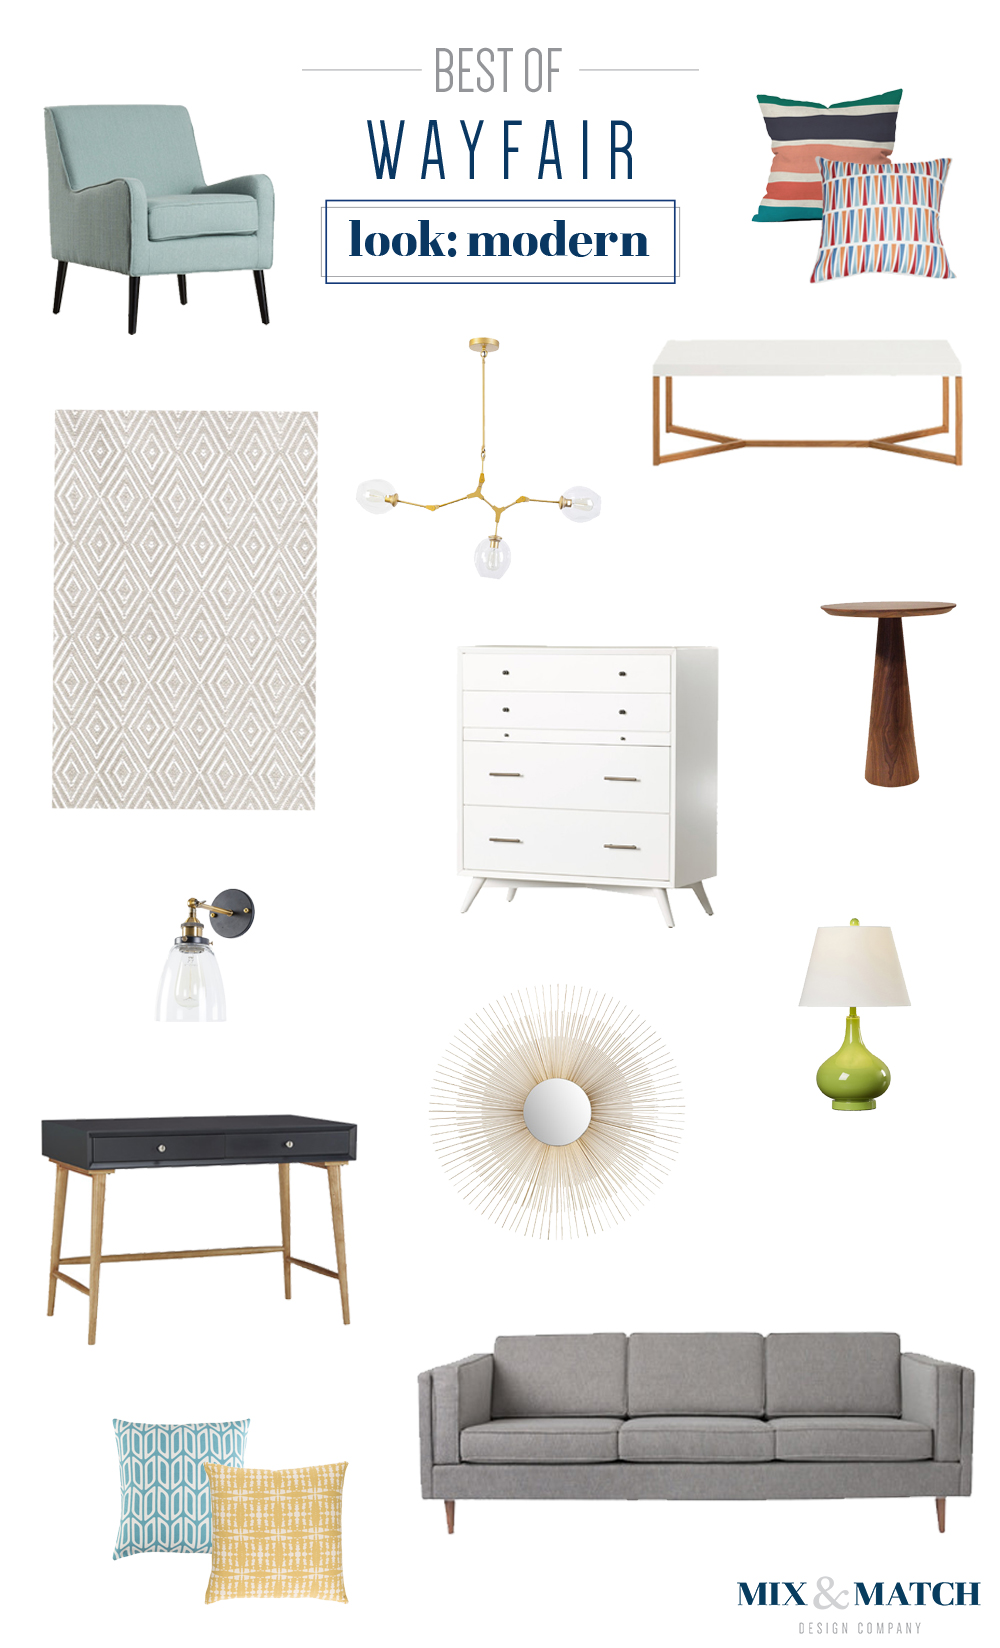 The best picks from Wayfair's modern furniture and home decor collection